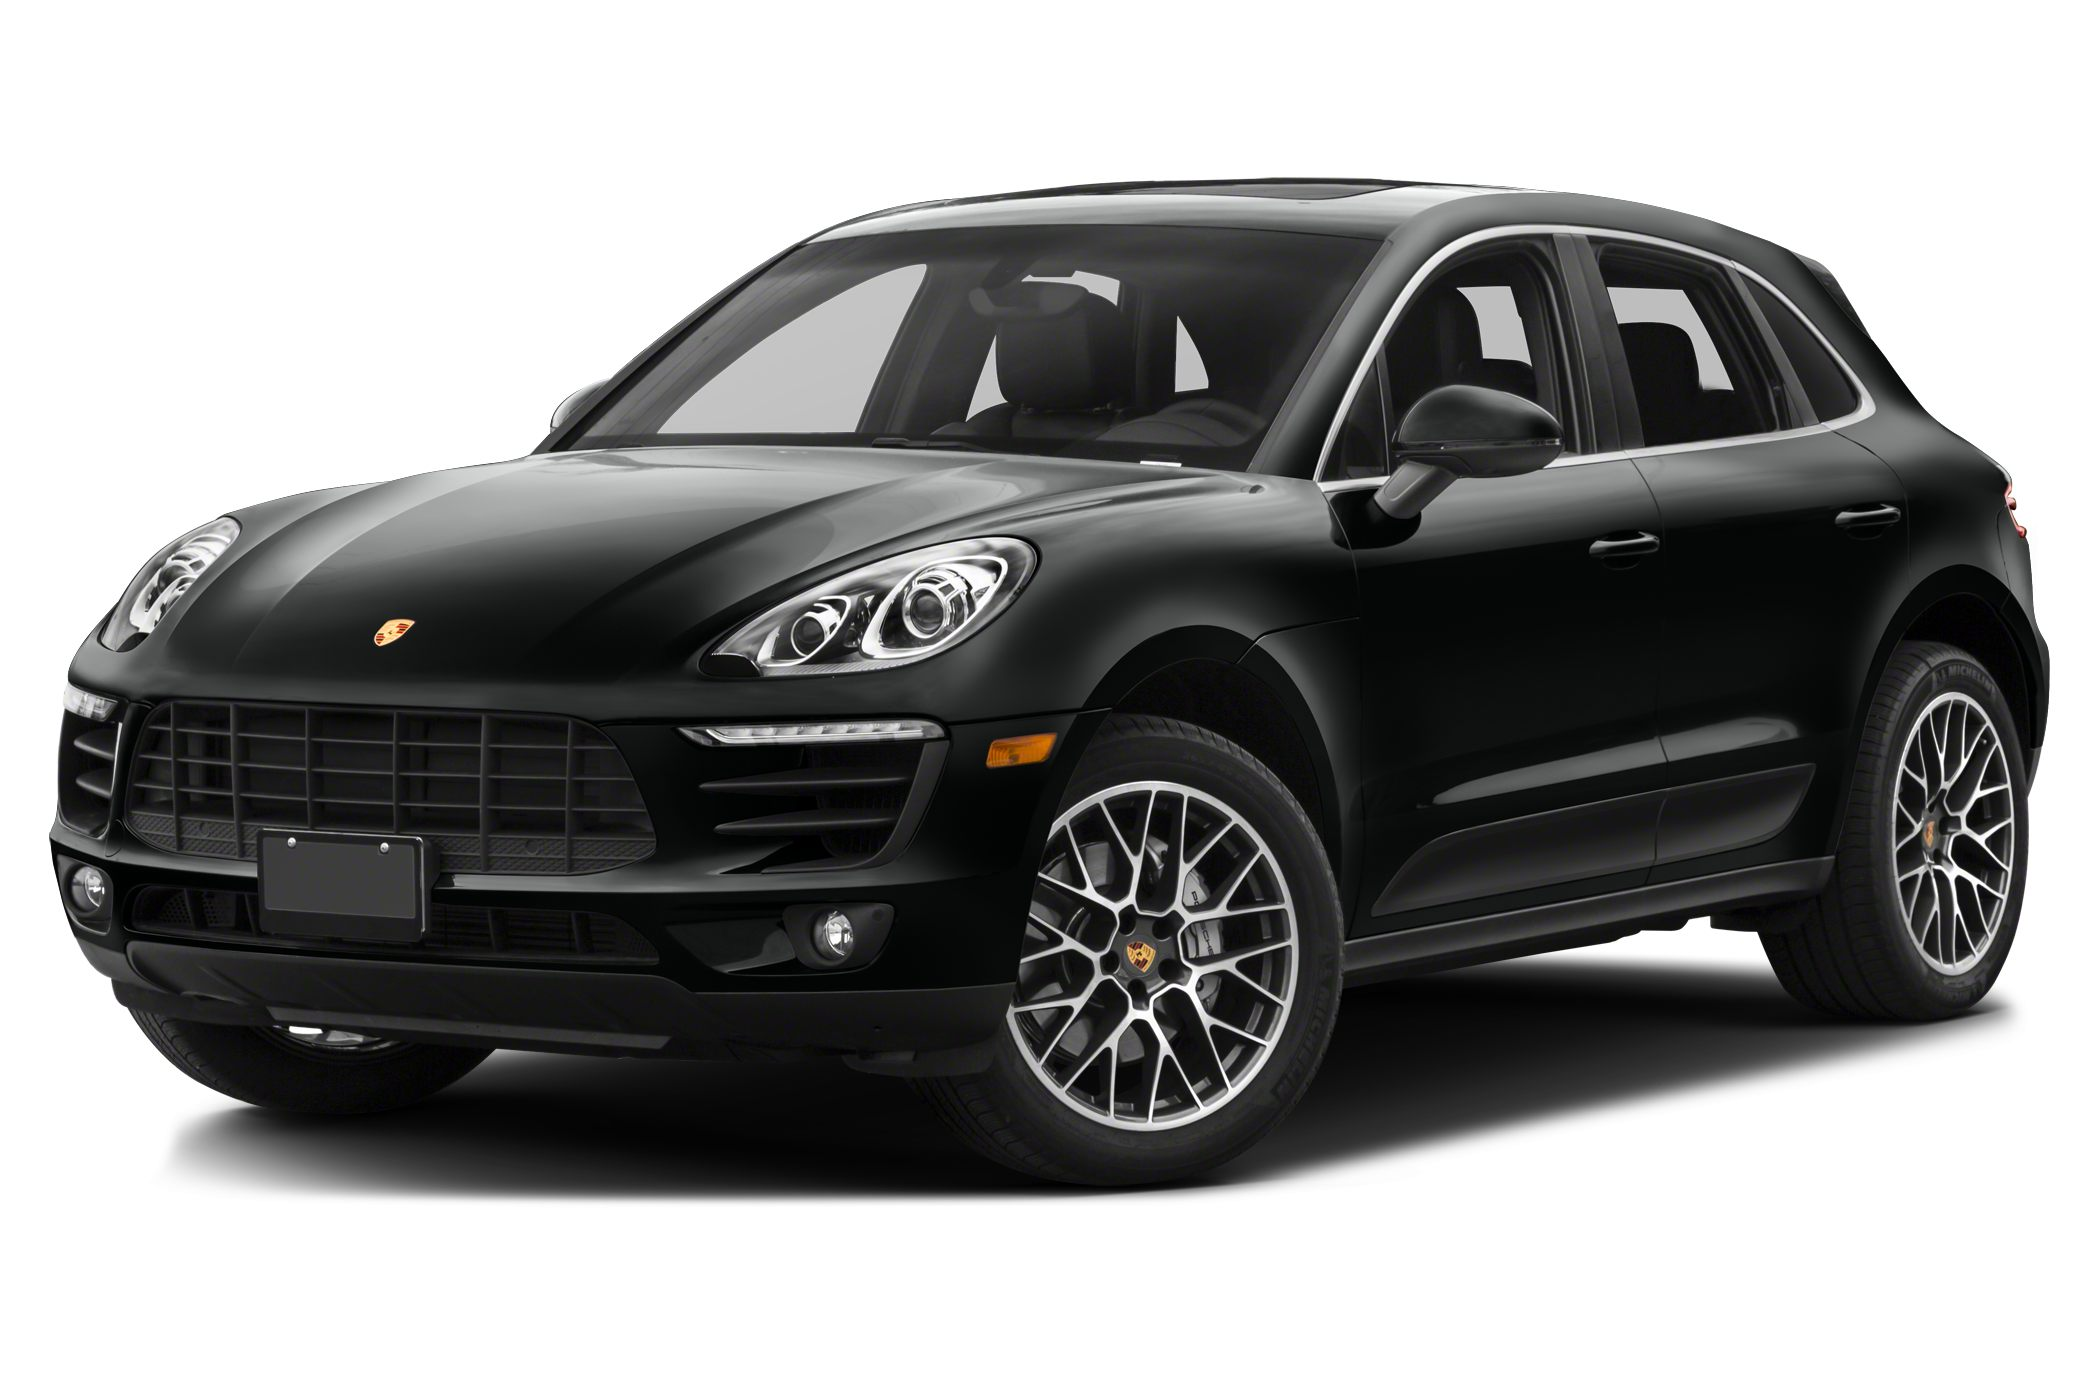 porsche rolls out new macan gts with 360 horsepower w video. Black Bedroom Furniture Sets. Home Design Ideas